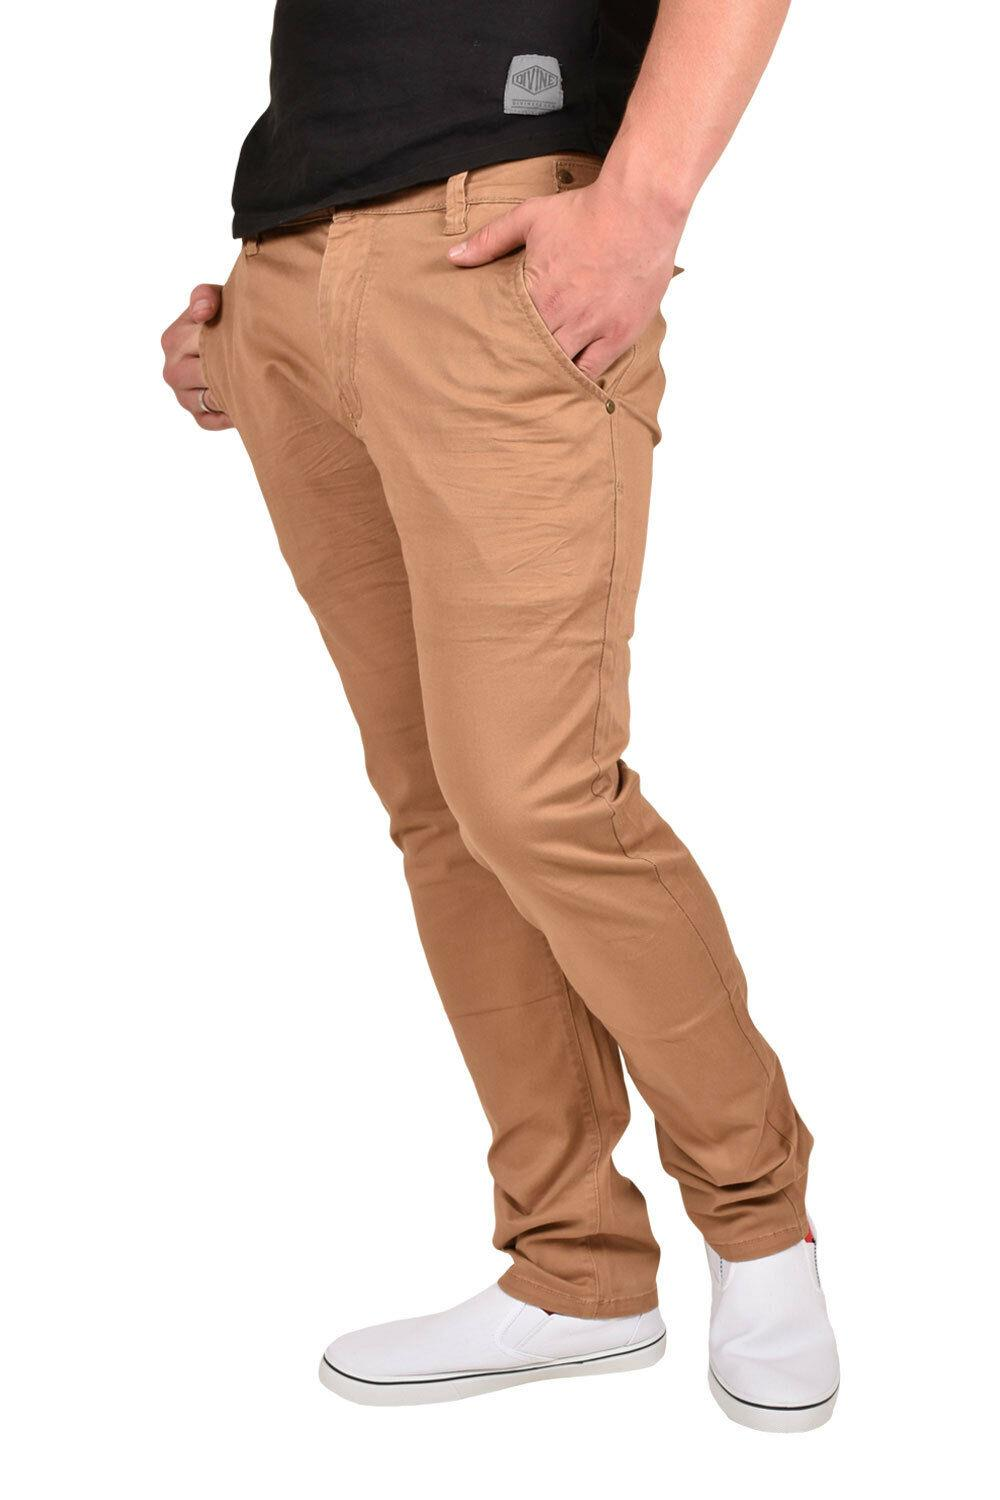 New-Mens-Designer-Jacksouth-Chino-Regular-Fit-Stretch-Cotton-Rich-Twill-Trousers thumbnail 36